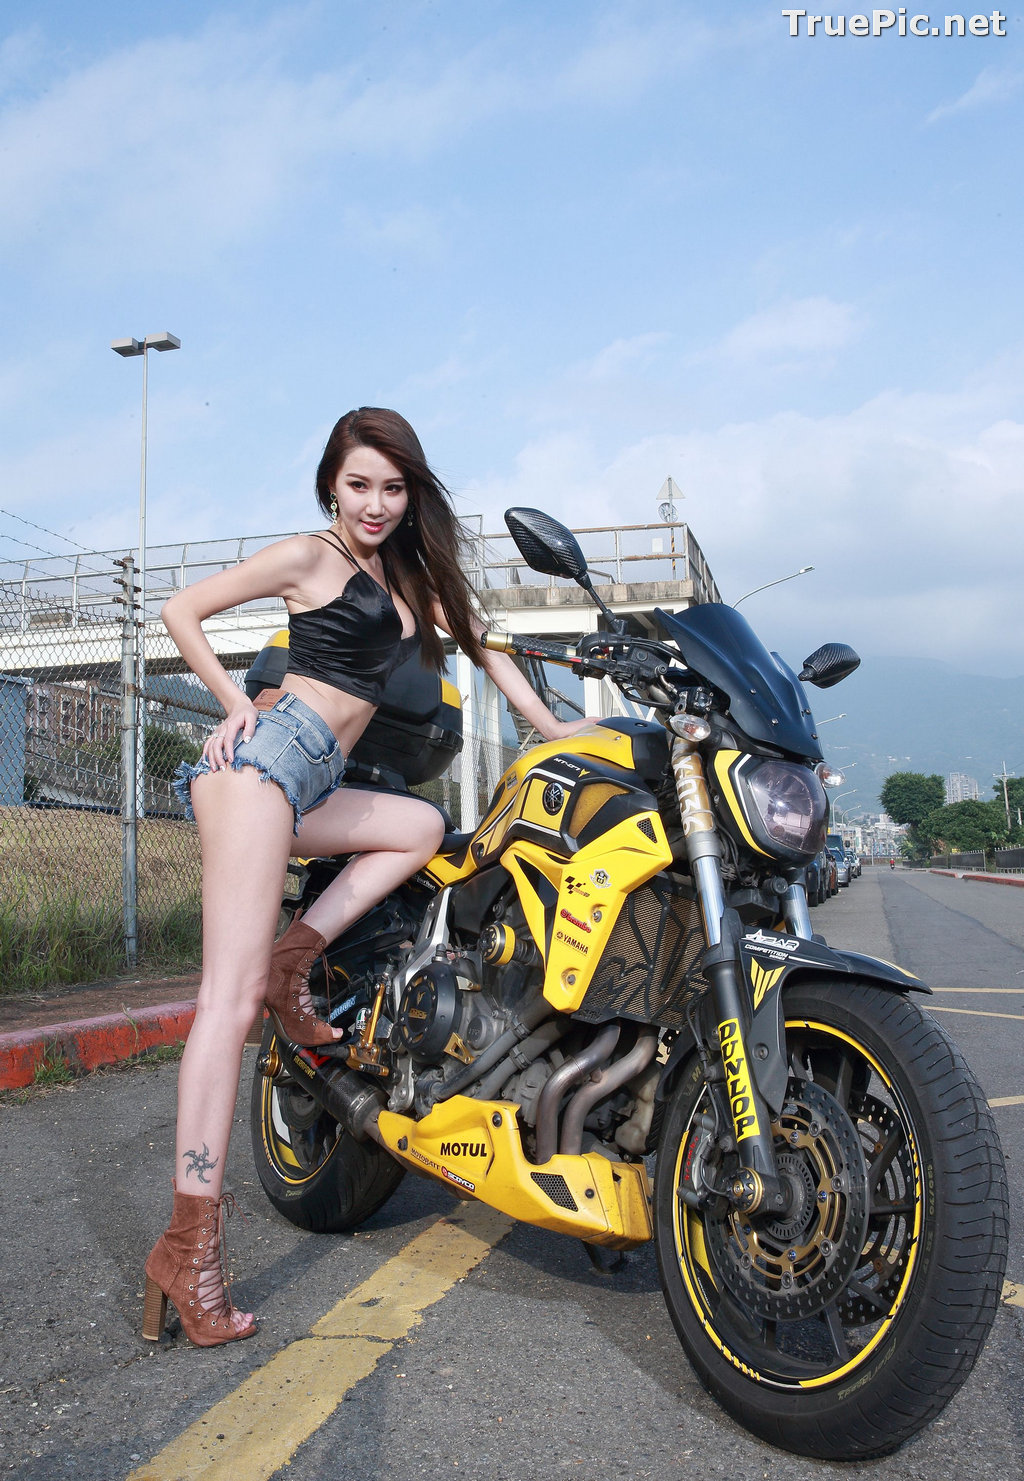 Image Taiwanese Model - Suki - Beautiful and Lovely Motor Racing Girl - TruePic.net - Picture-8